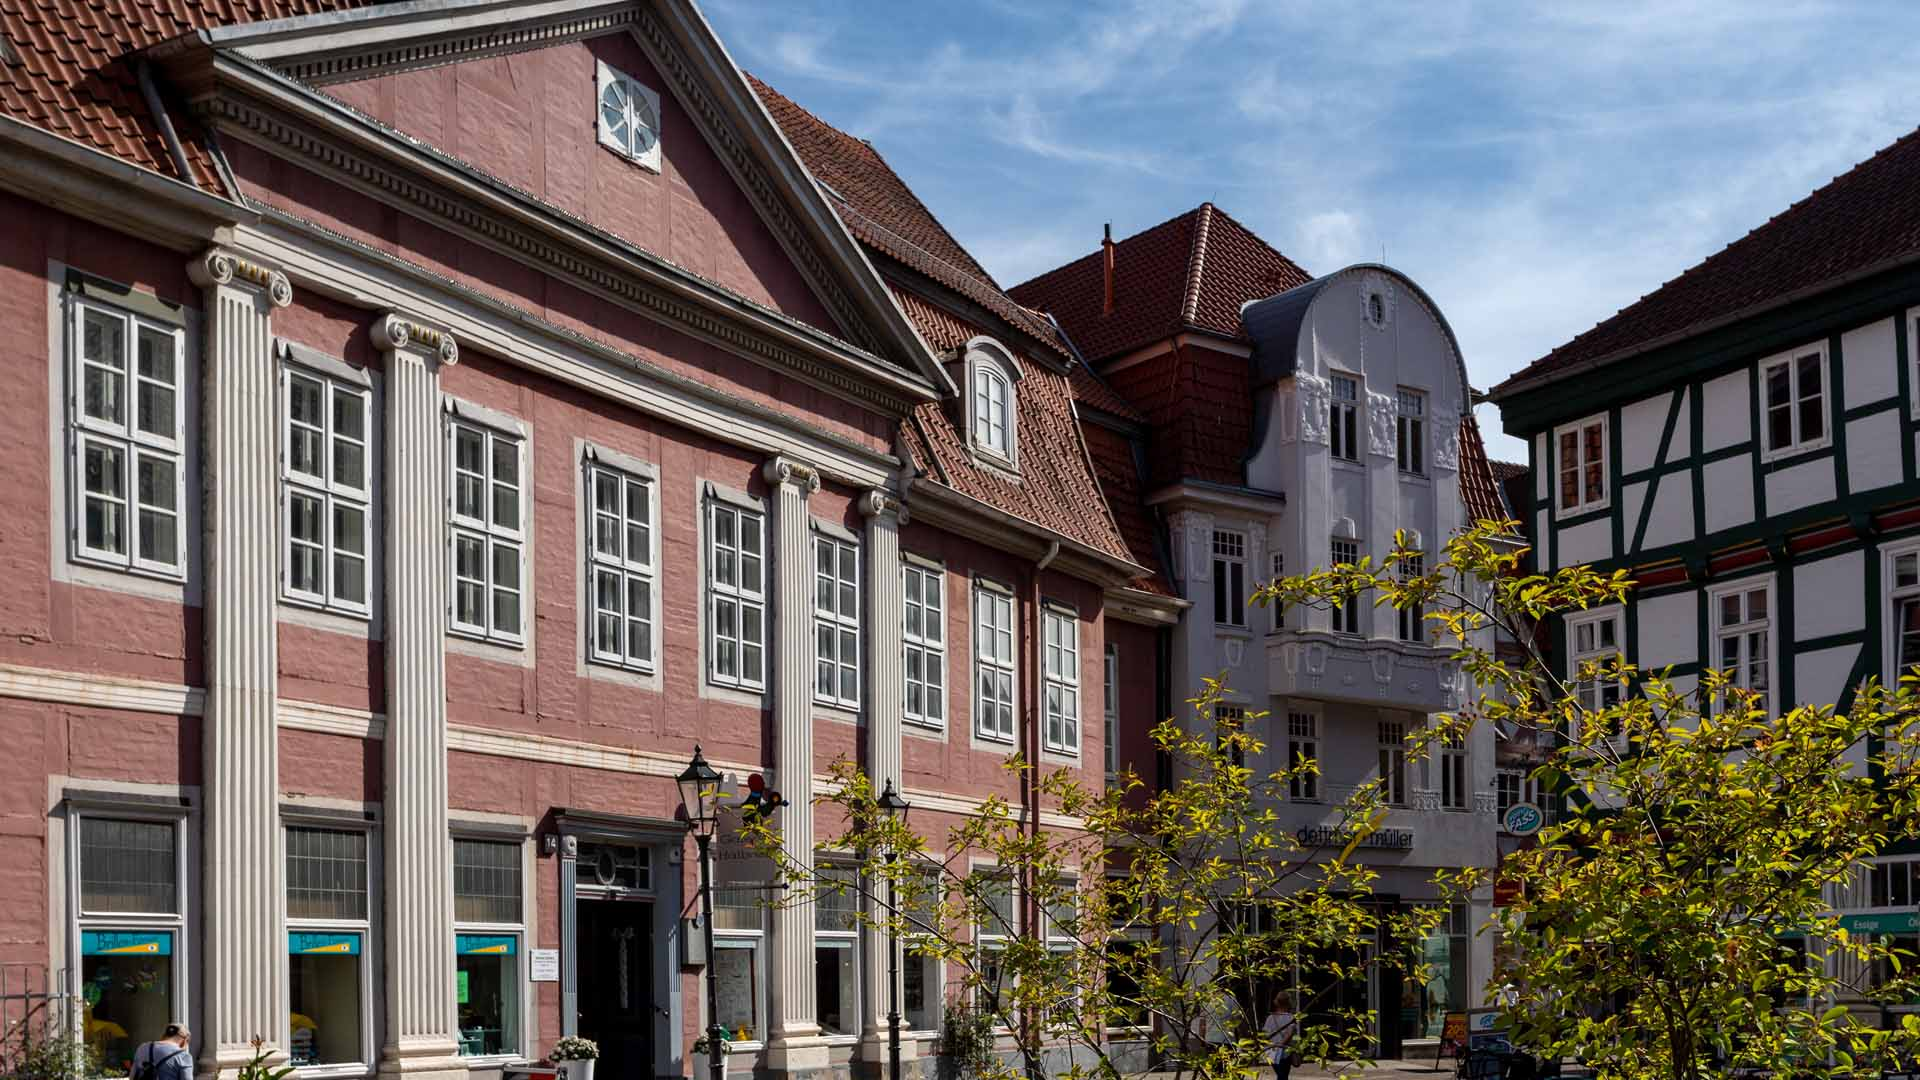 Stechinellihaus in Celle